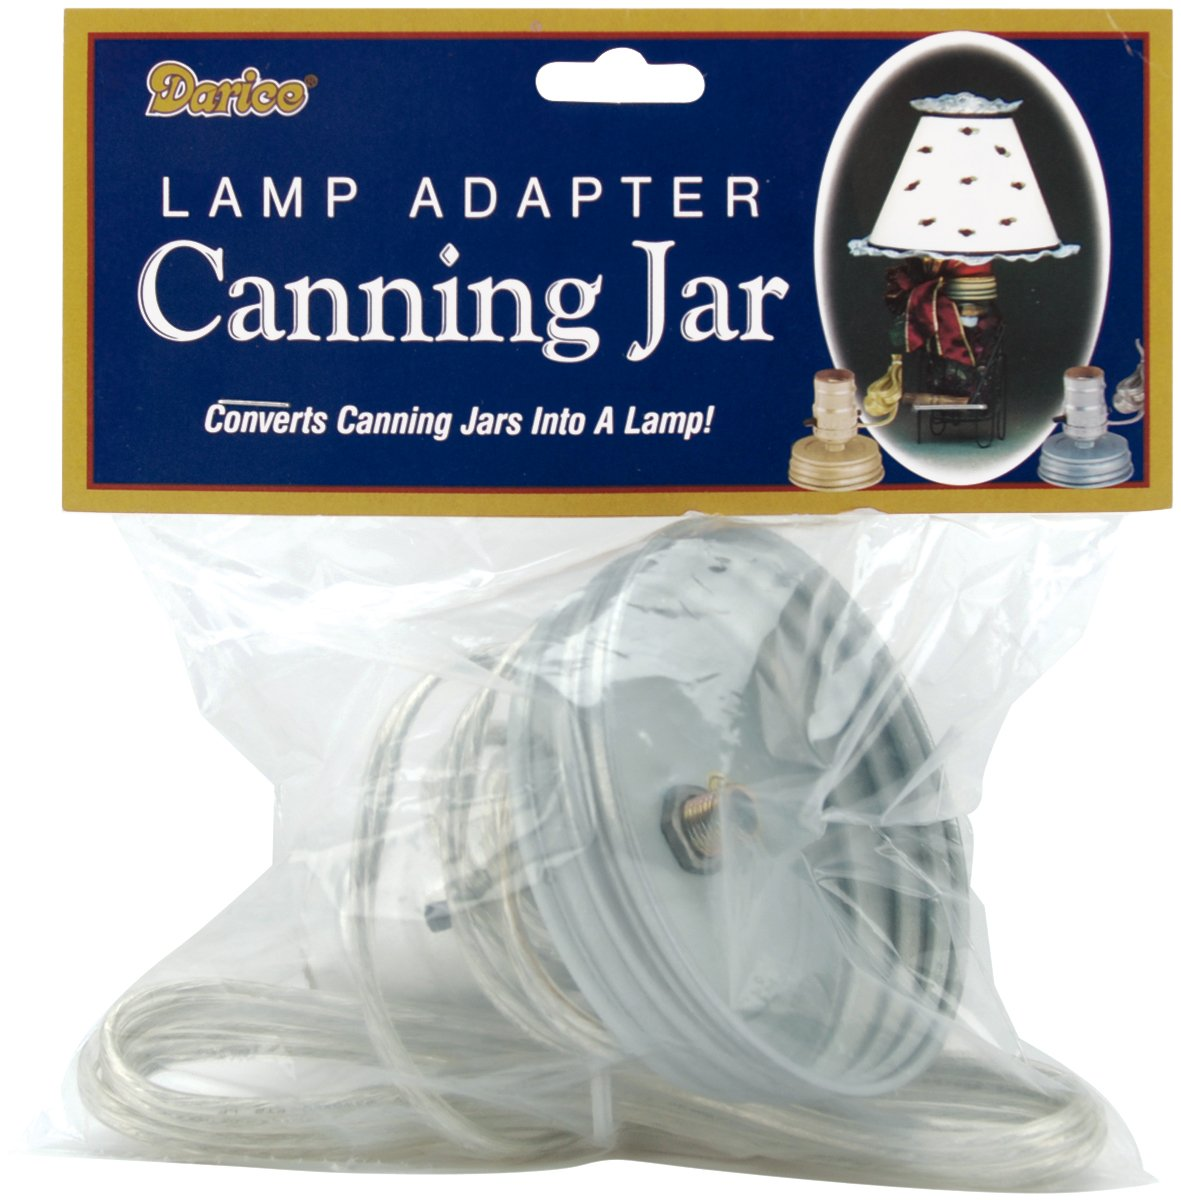 Amazon.com: Darice Canning Jar Lamp Adapter with Silver Cord: Home ...